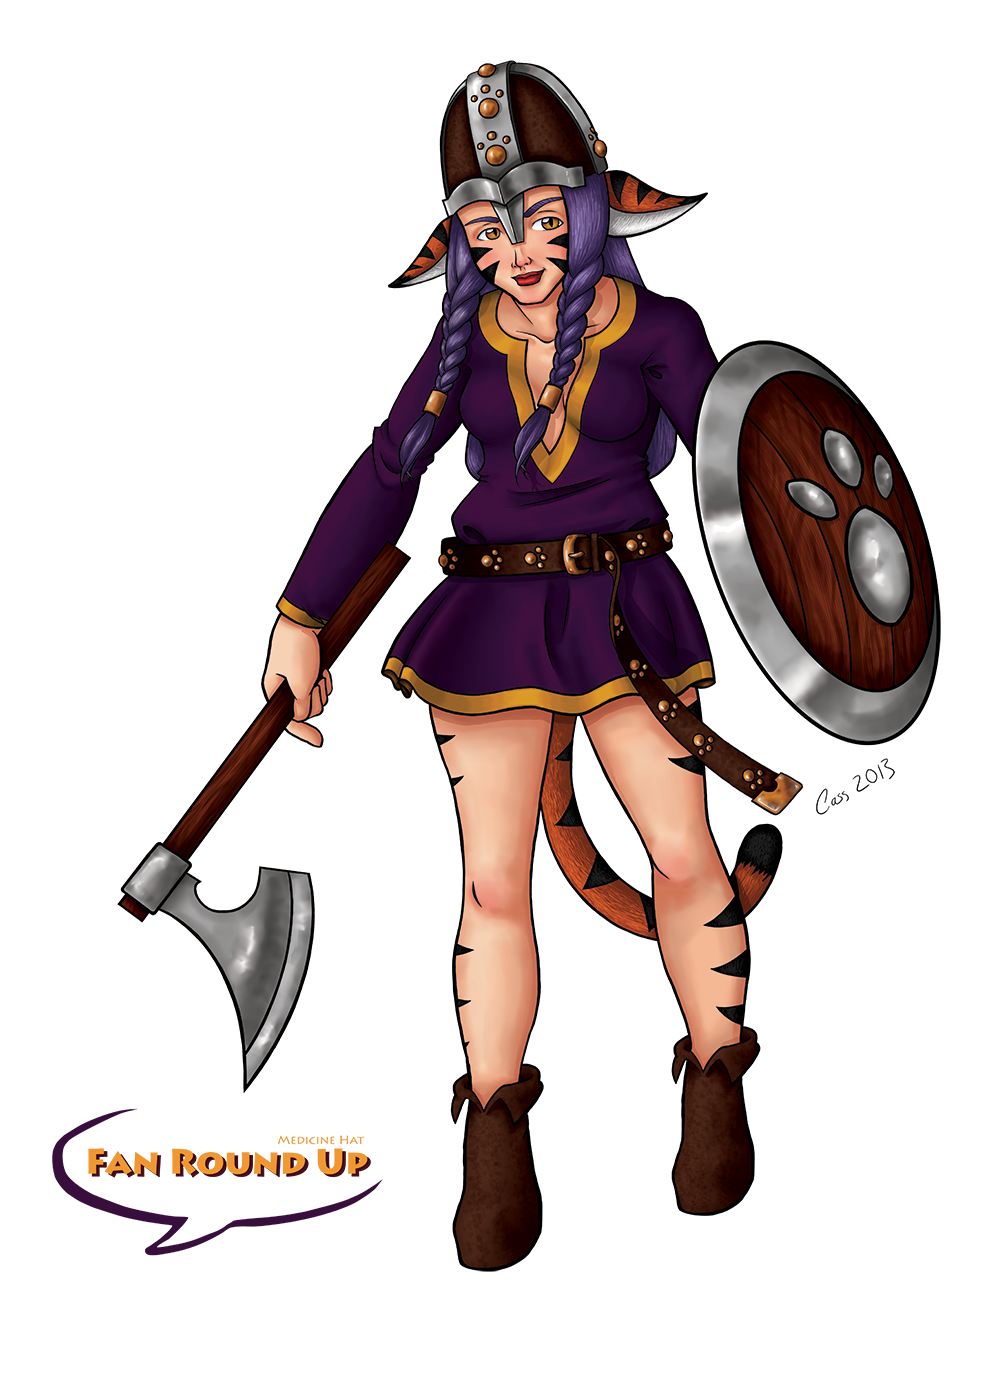 2013 'Fan Round Up' Convention Mascot